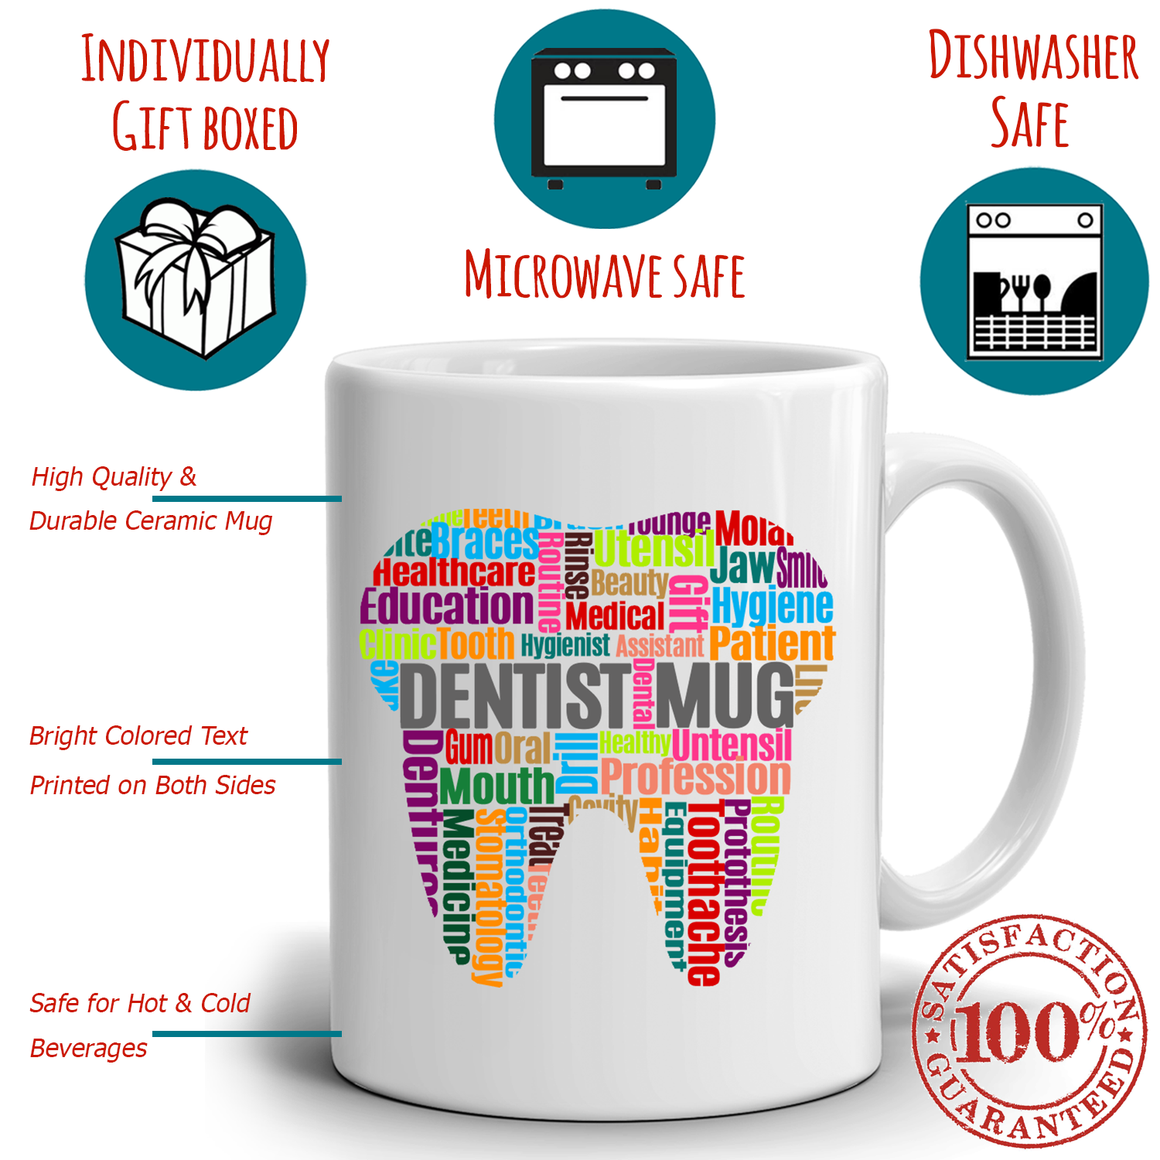 A Cool and Fun Dentist Coffee Mug is a Unique Gift idea for the Dental Profession, 100% Microwave and Diswasher Safe